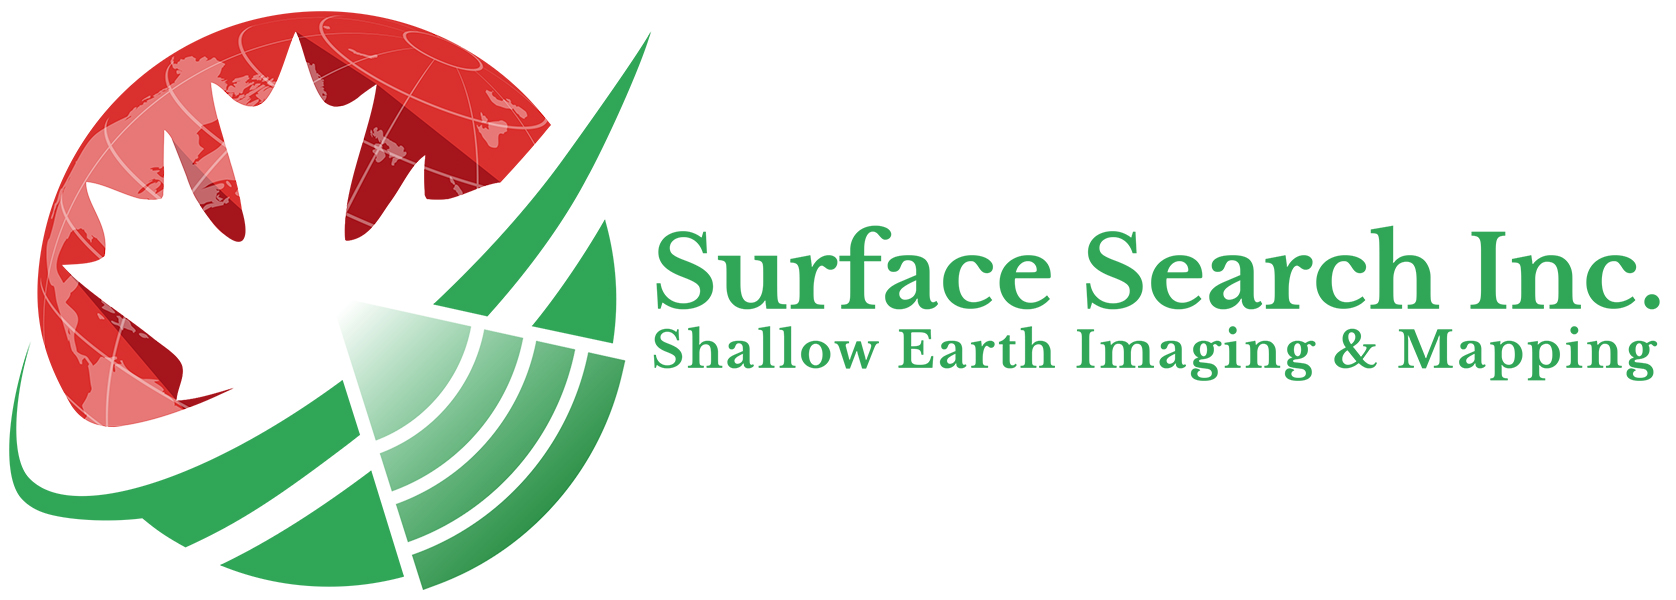 Surface Search